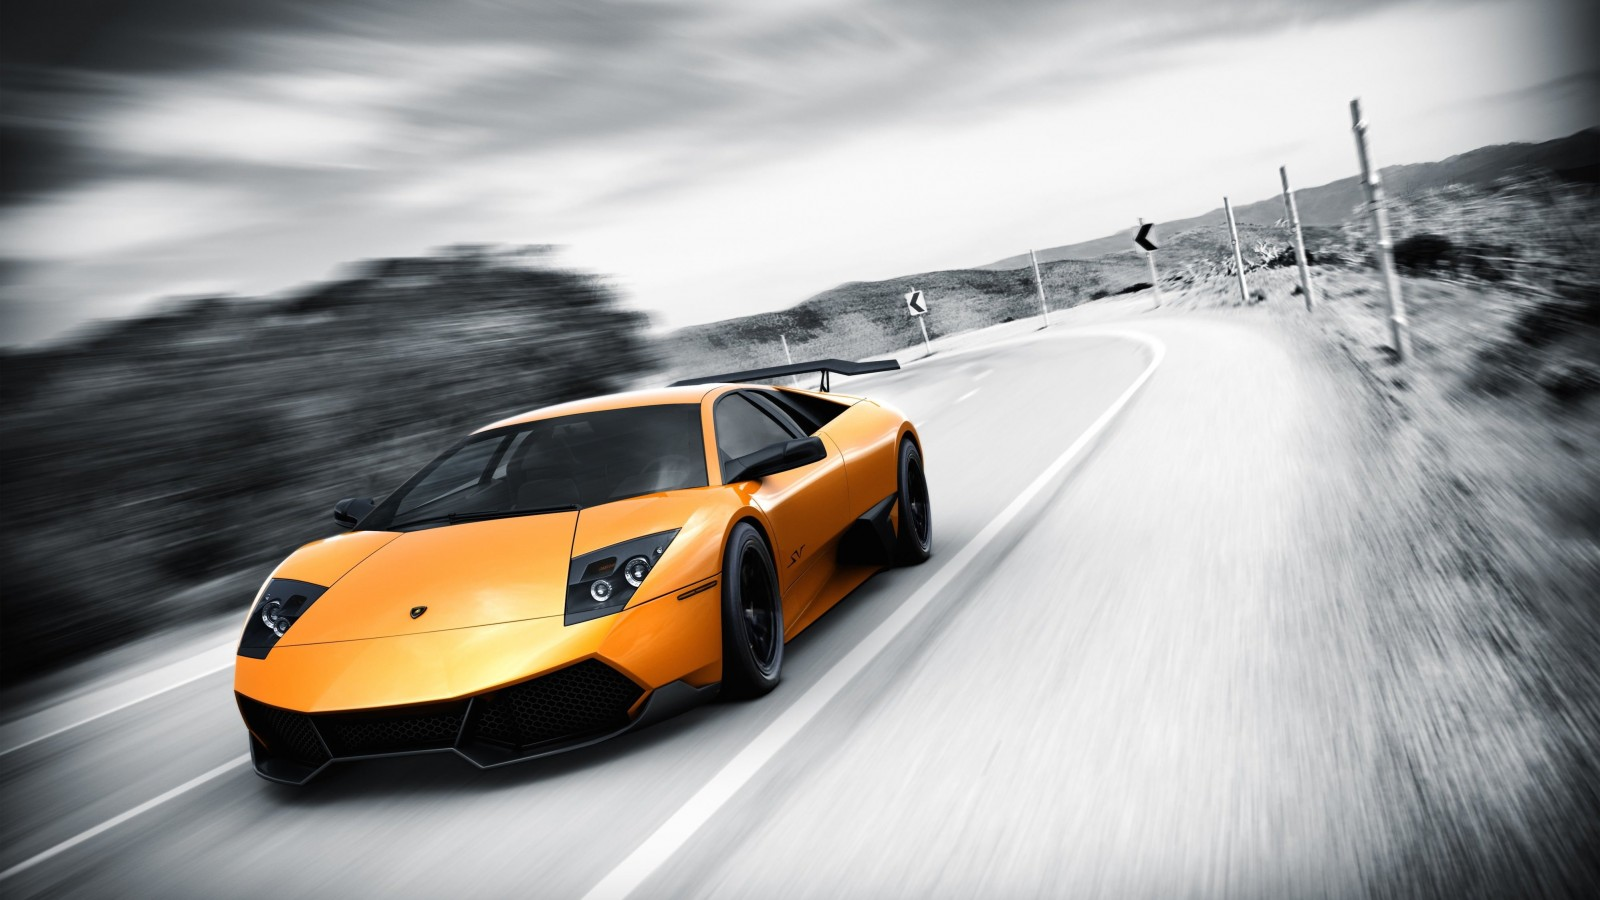 Lamborghini Murcielago LP670 Wallpaper for Desktop 1600x900